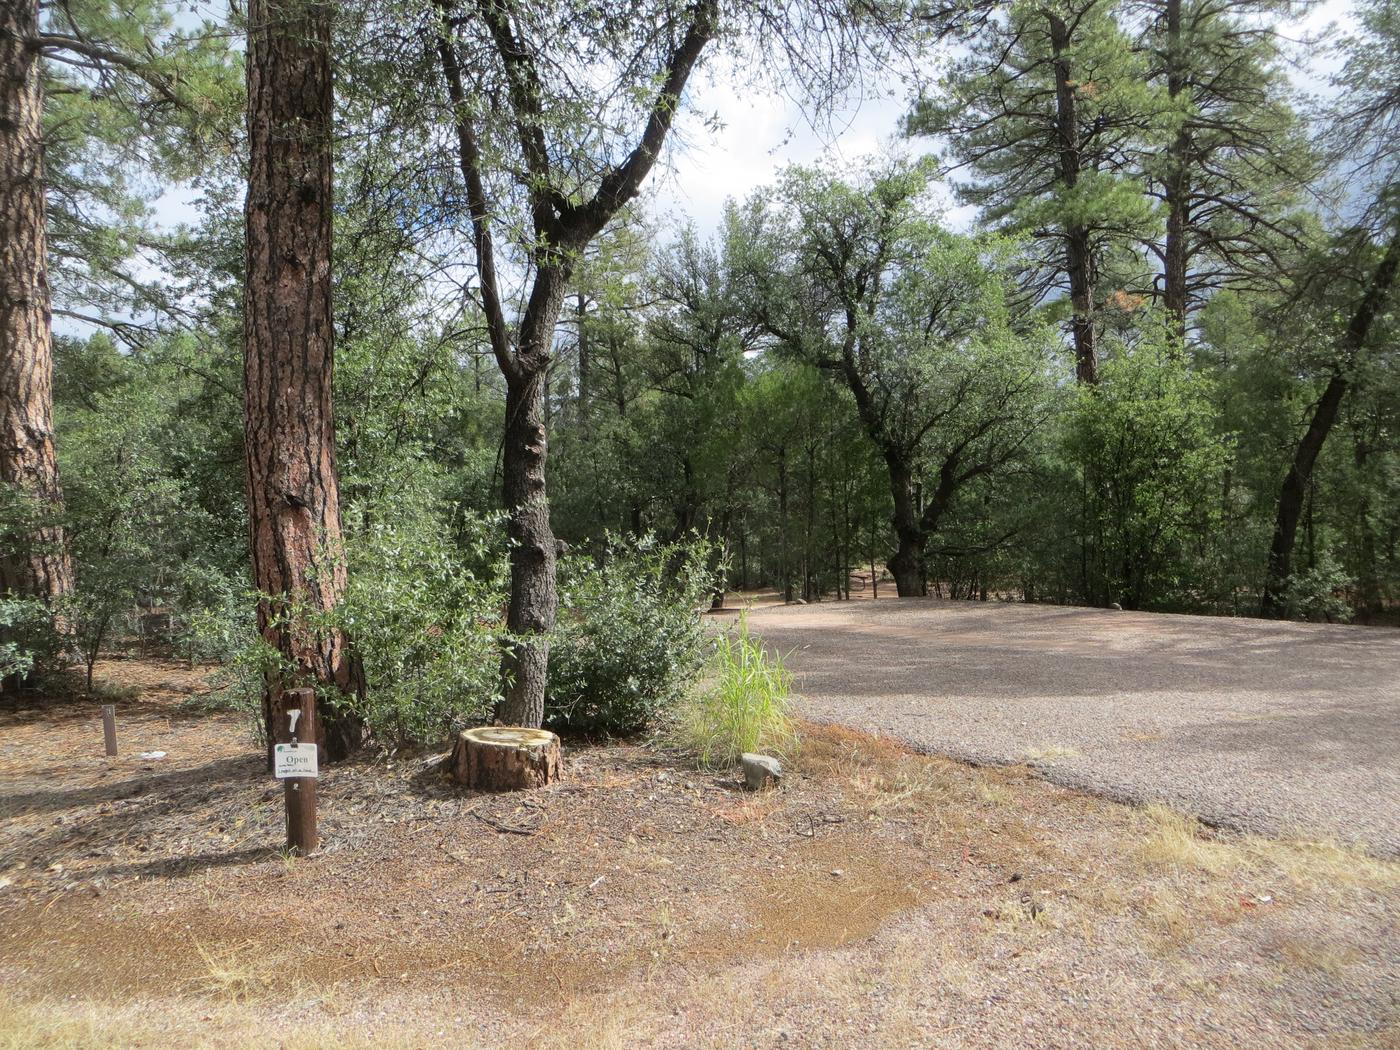 Parking space and entrance to site #07, Elk Loop at Houston Mesa.